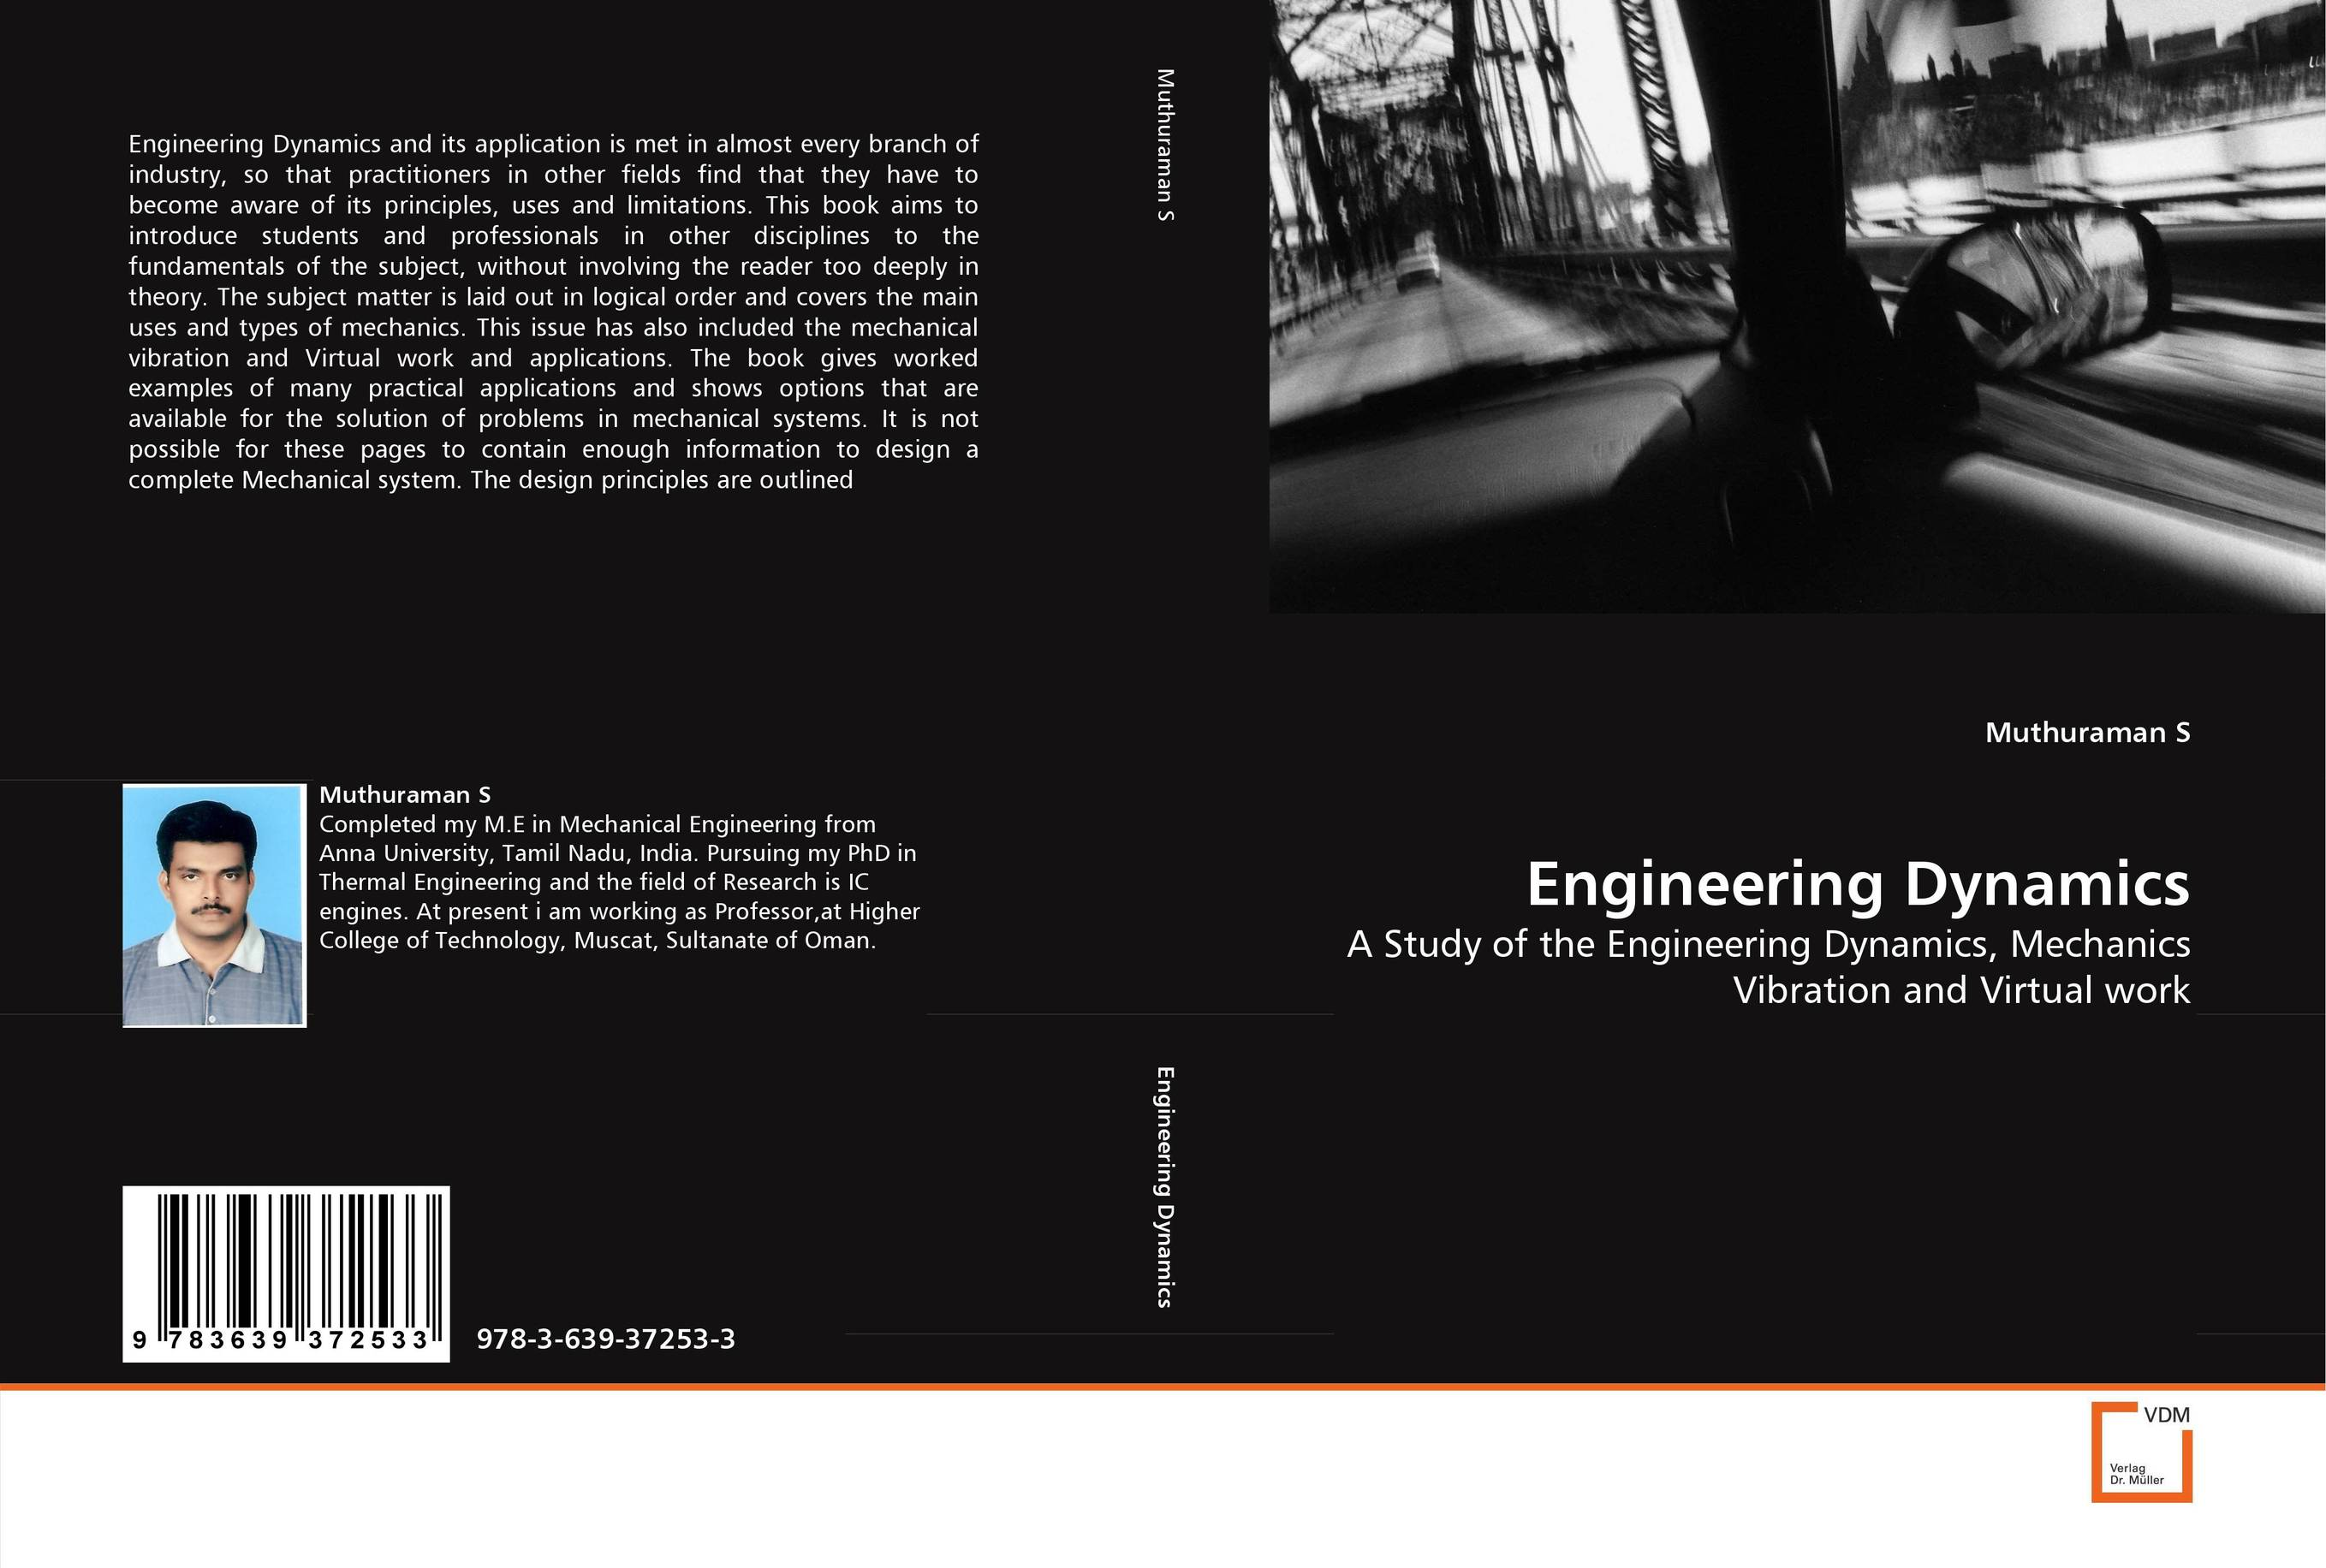 Engineering Dynamics rasoul moradi and hamid lankarani impact dynamics of mechanical systems and structures